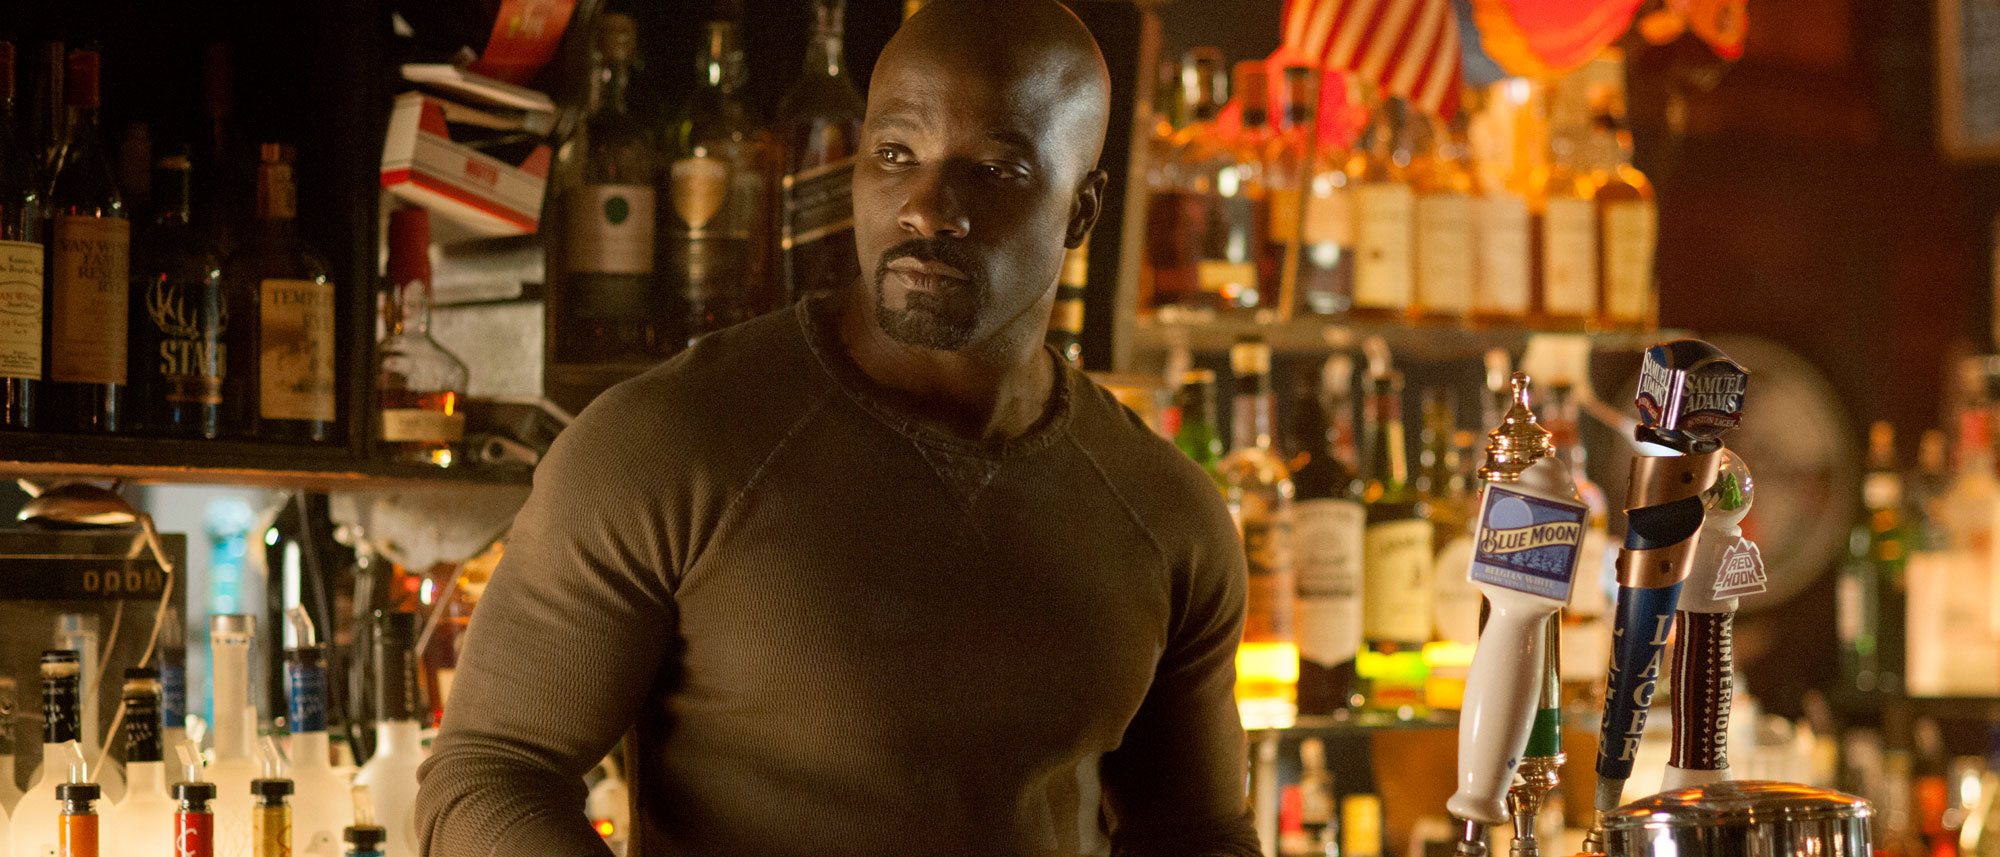 Mike-Colter-as-Luke-Cage-MCU